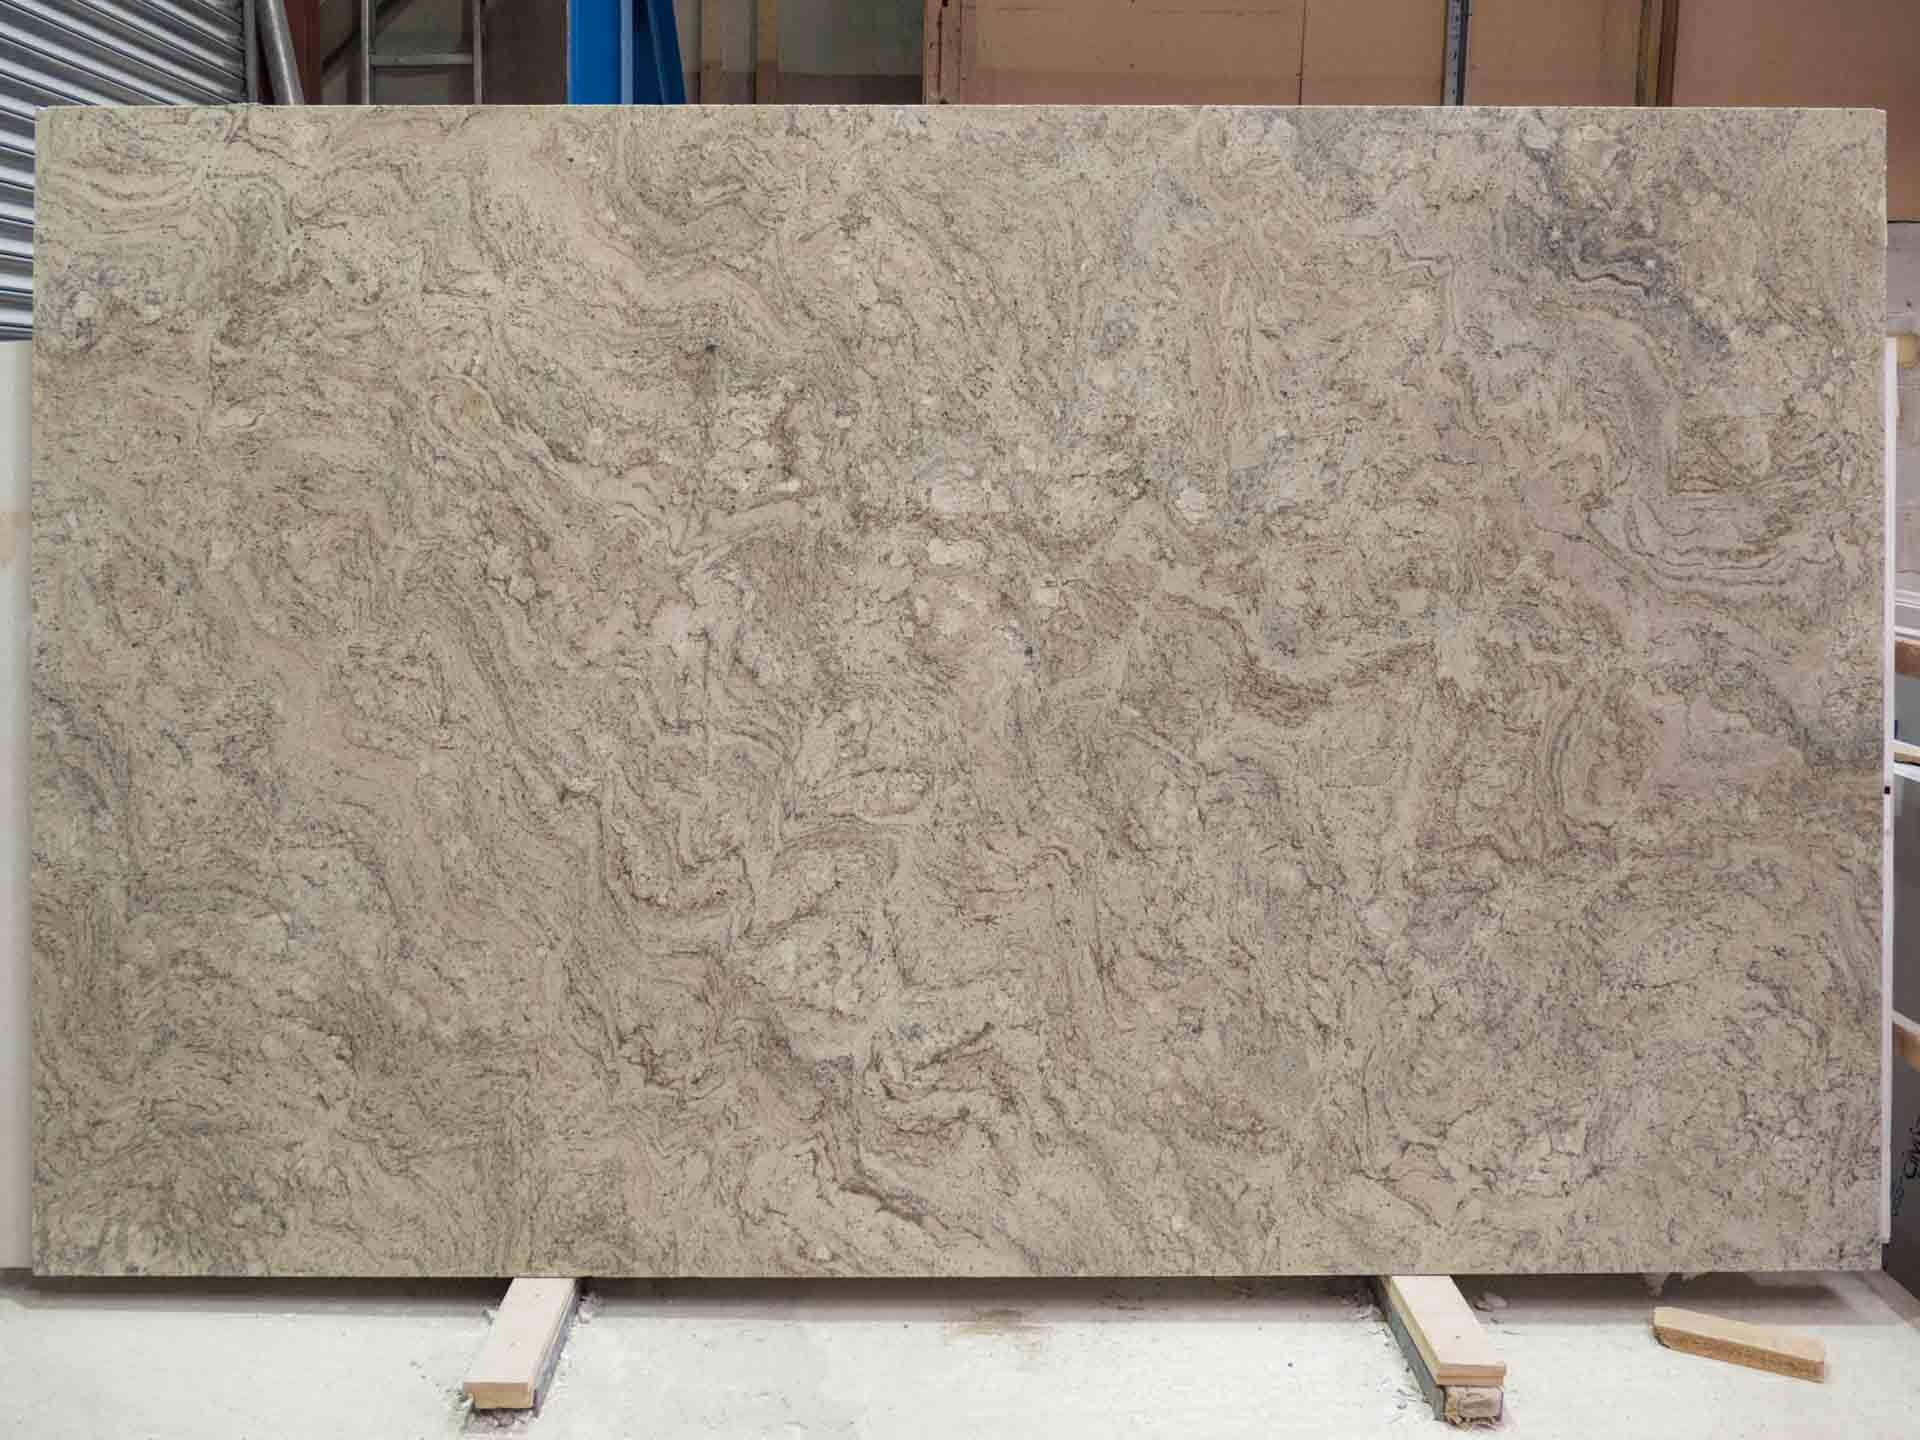 kashmir lime granite slab cambria quartz